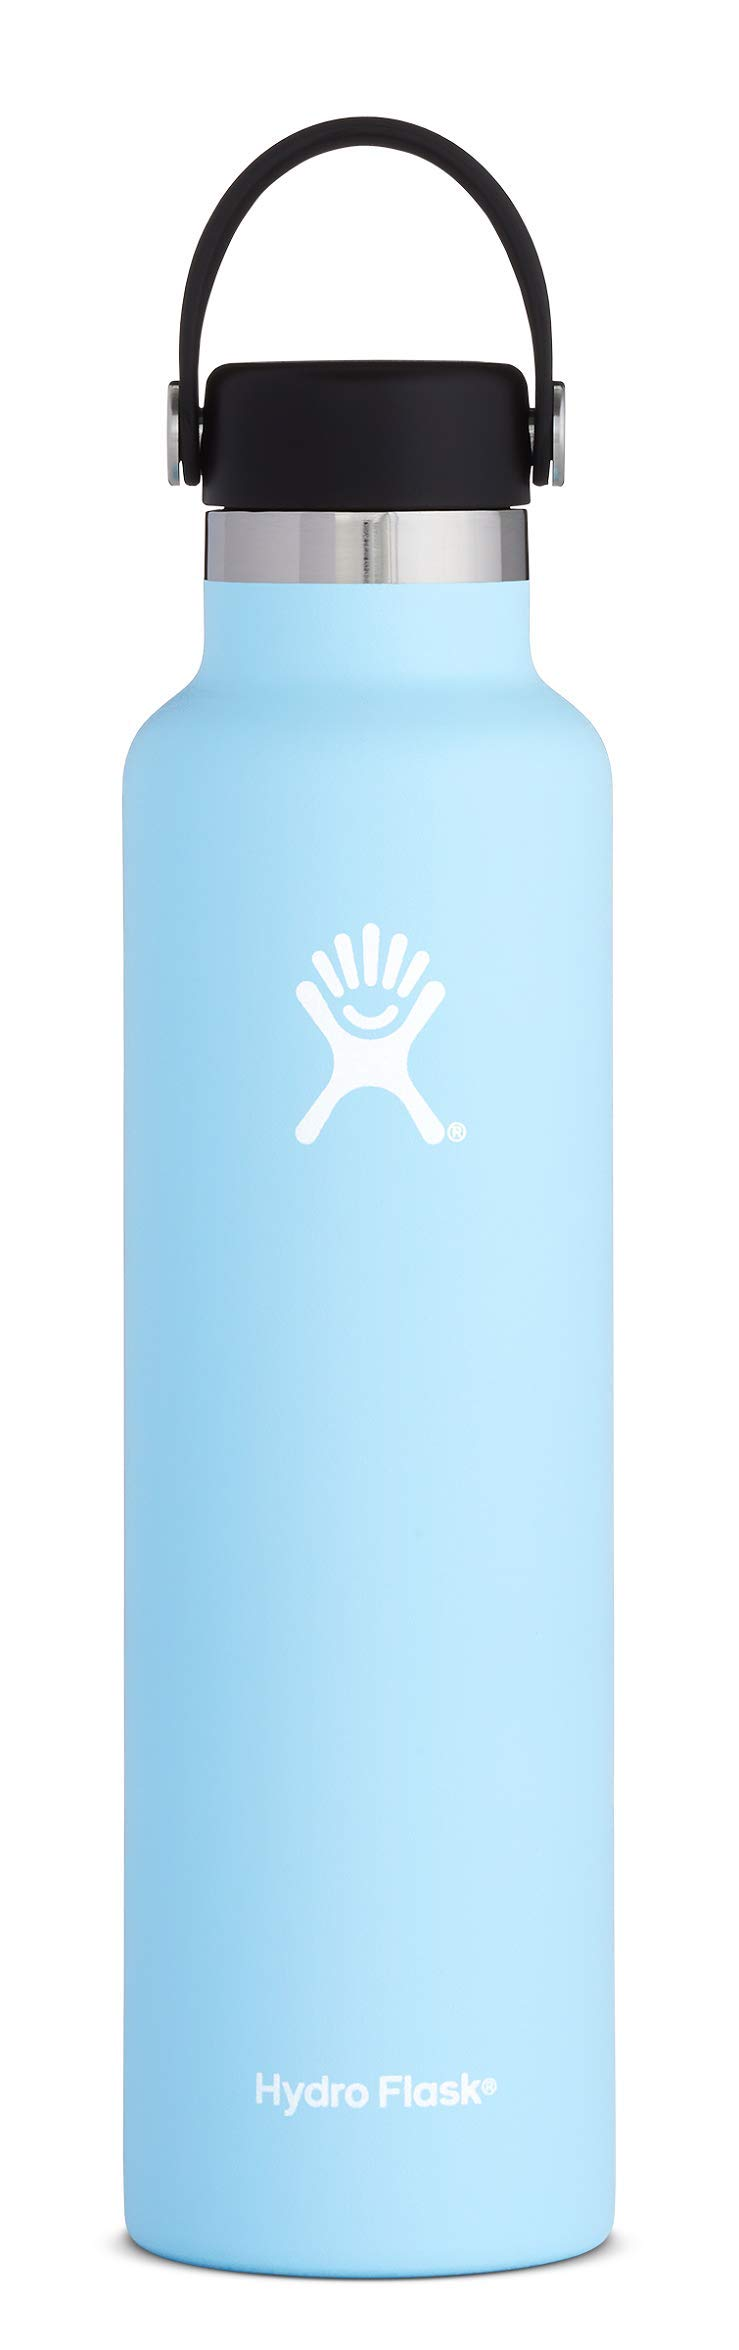 Hydro Flask Water Bottle - Stainless Steel & Vacuum Insulated - Standard Mouth with Leak Proof Flex Cap - 24 oz, Frost by Hydro Flask